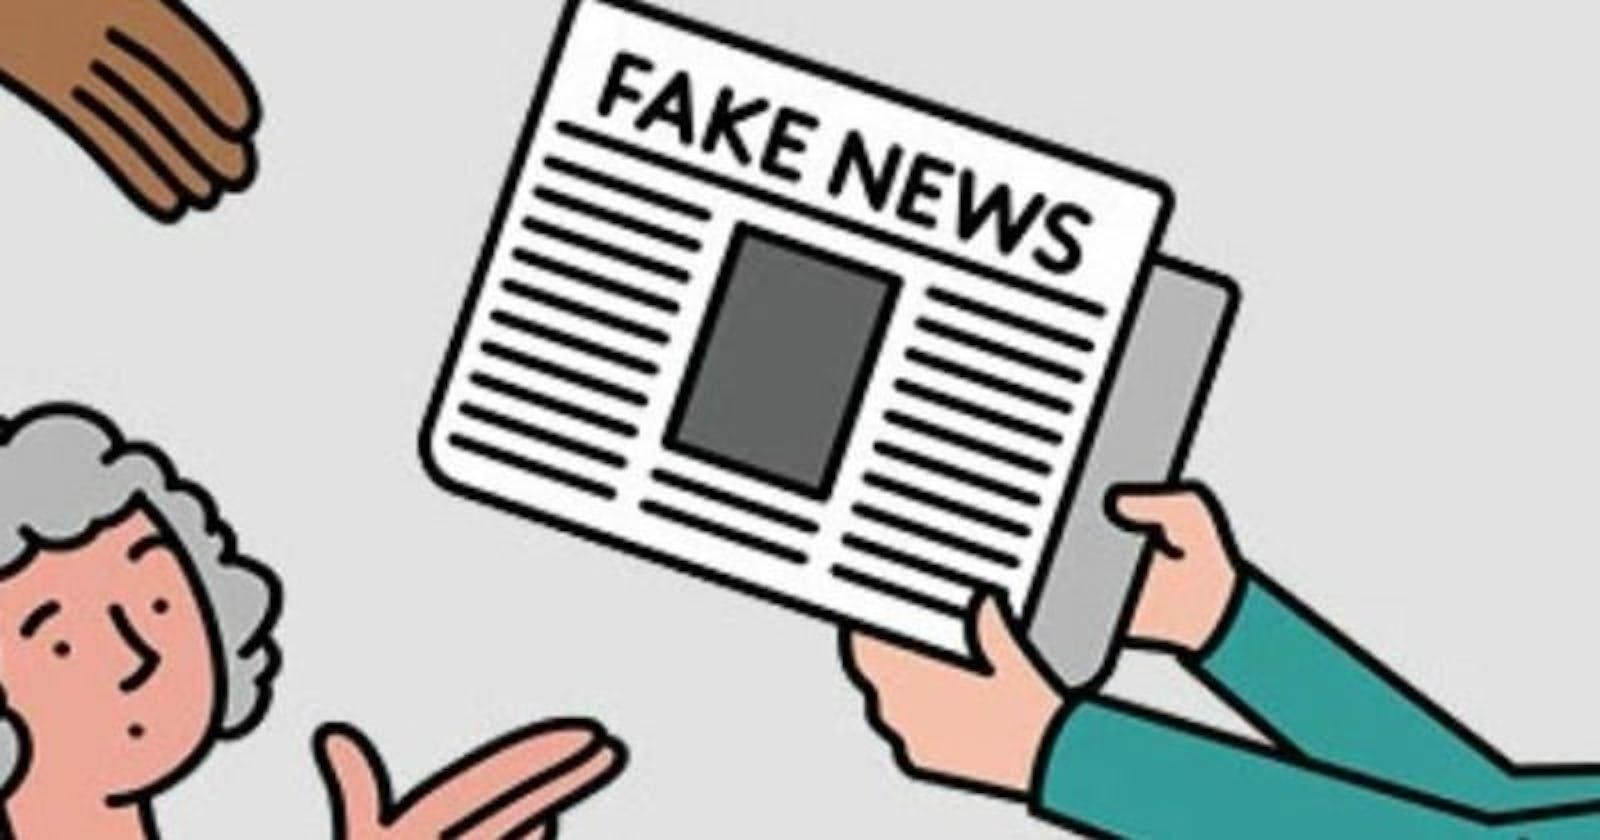 Why is Fake News Spread so Hard to Stop?